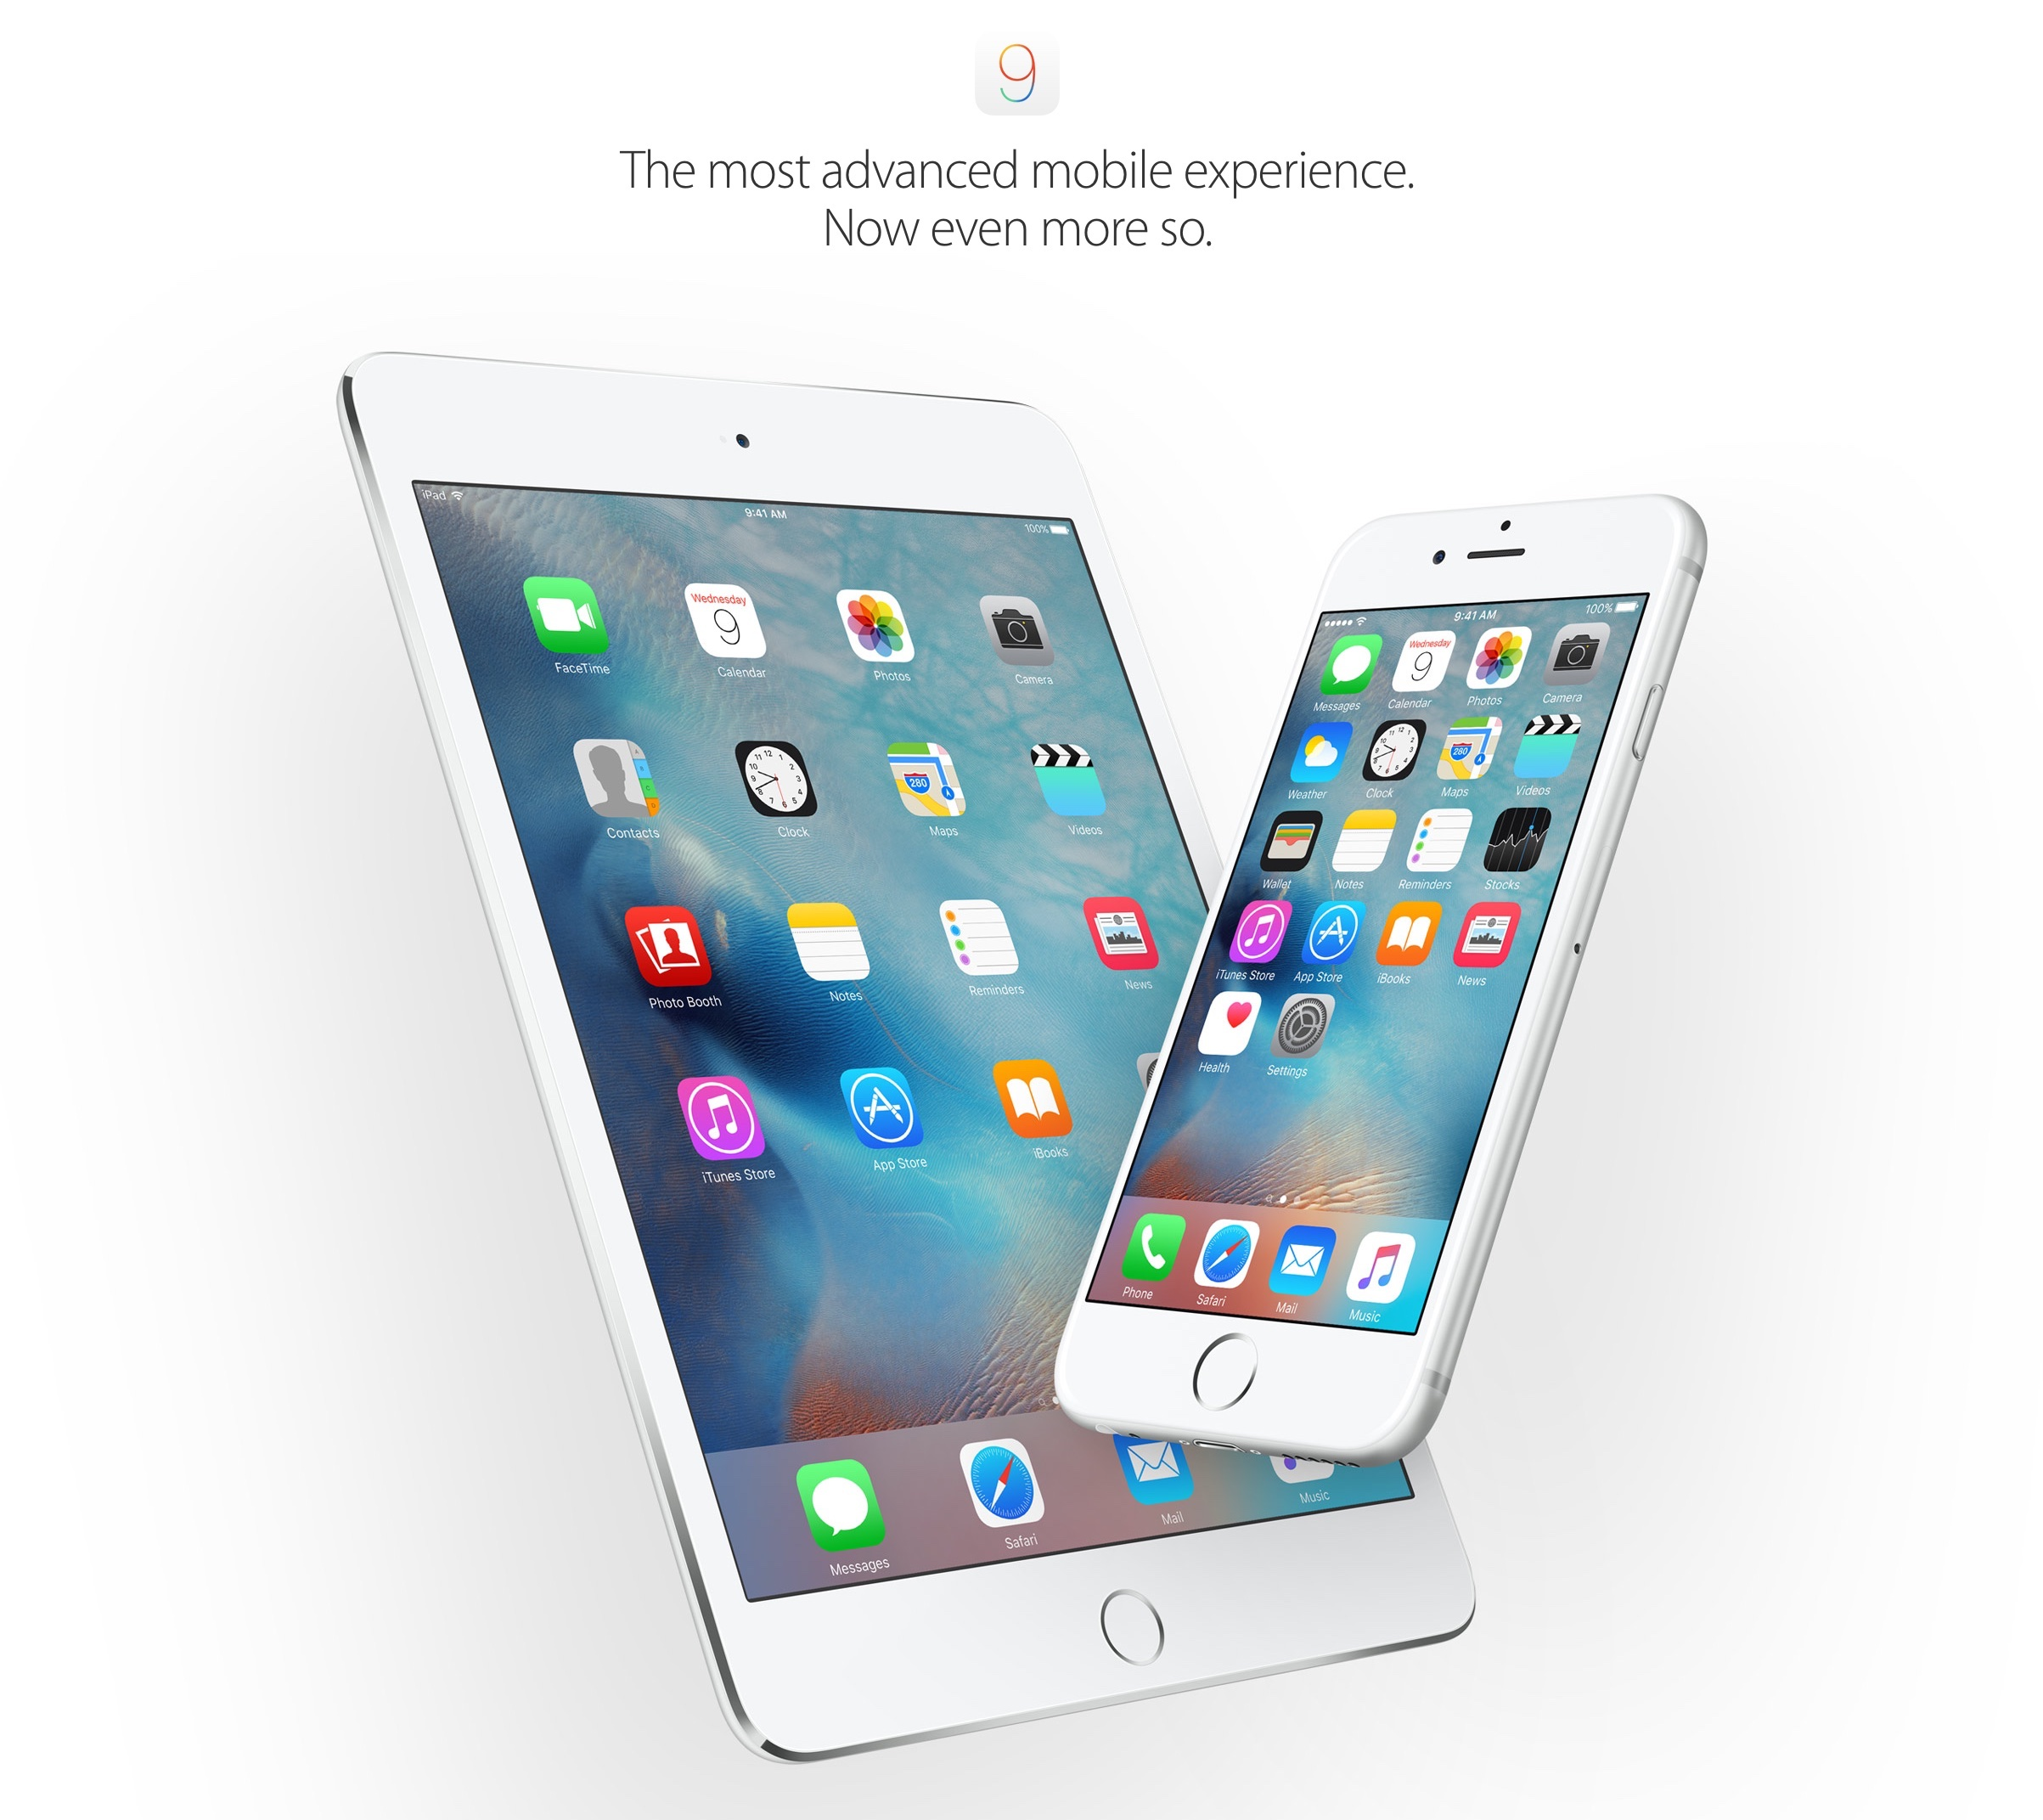 iOS 9 teaser iPhone iPad image 003